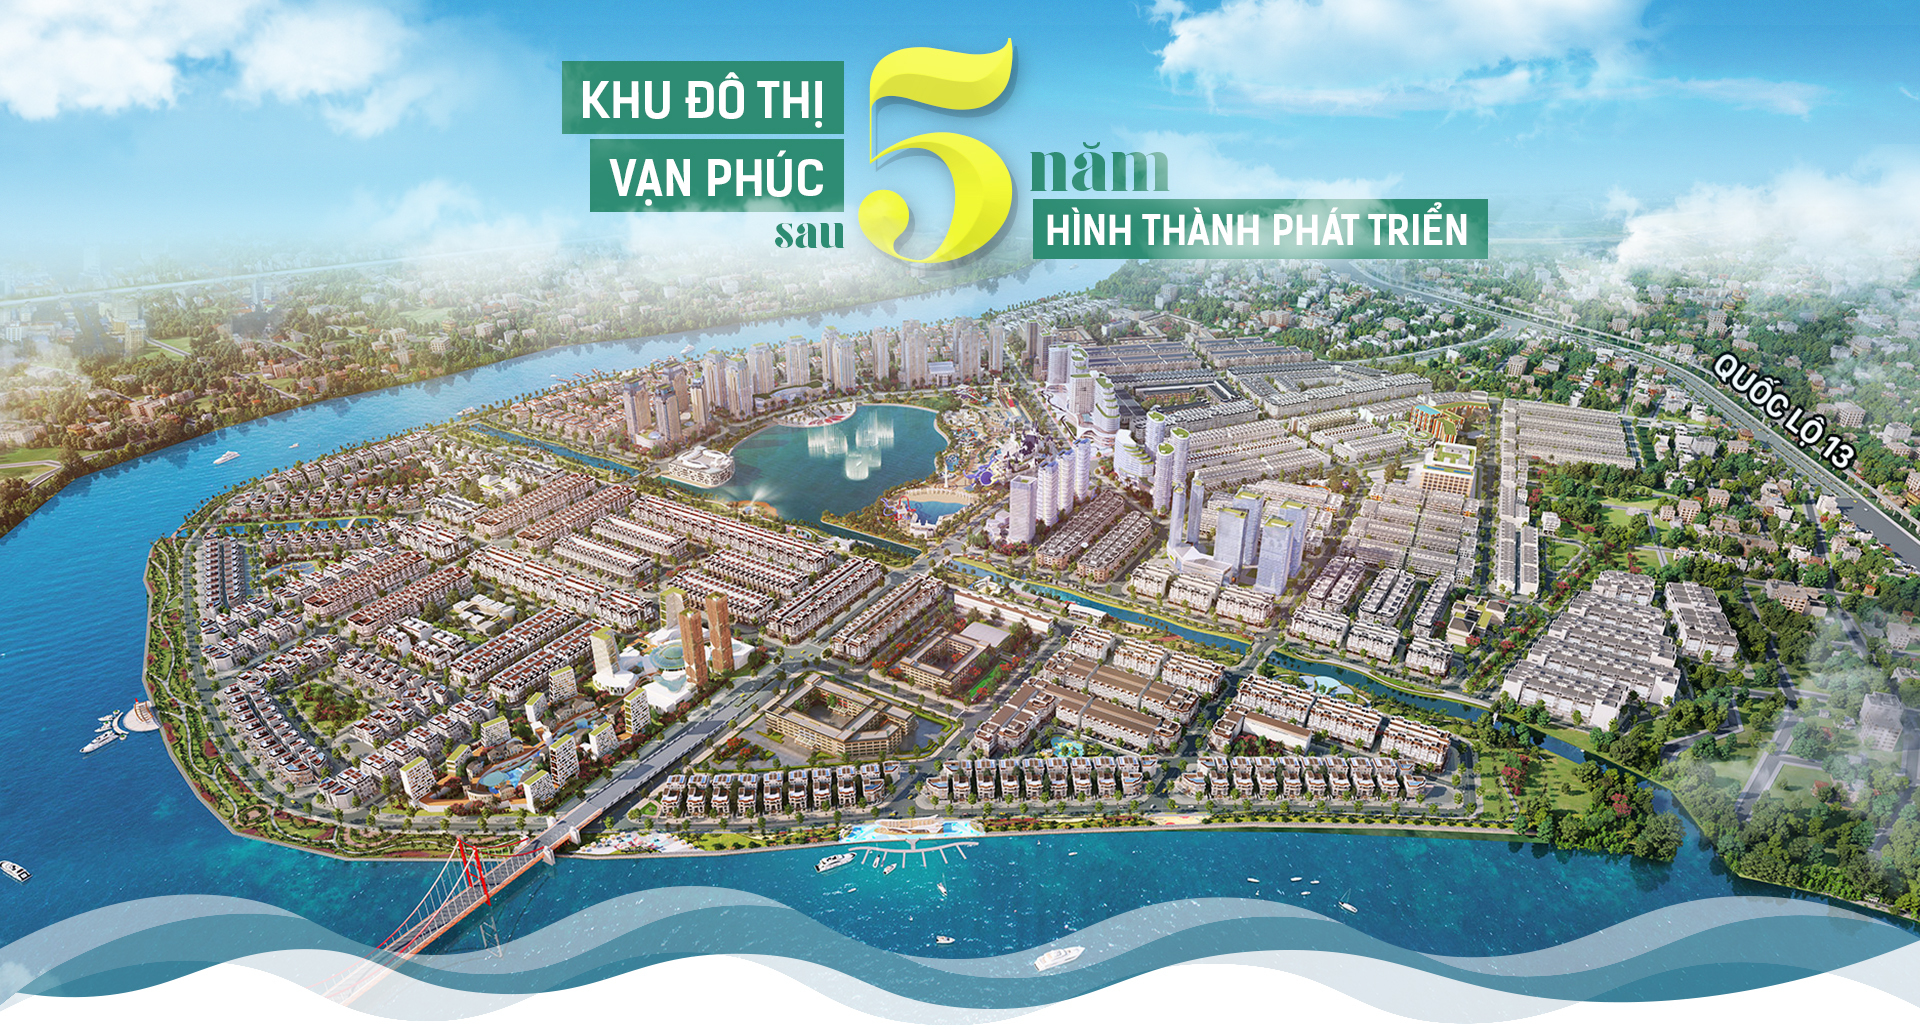 Sembcorp Industries' urban business forms JV to expand warehousing properties in Vietnam